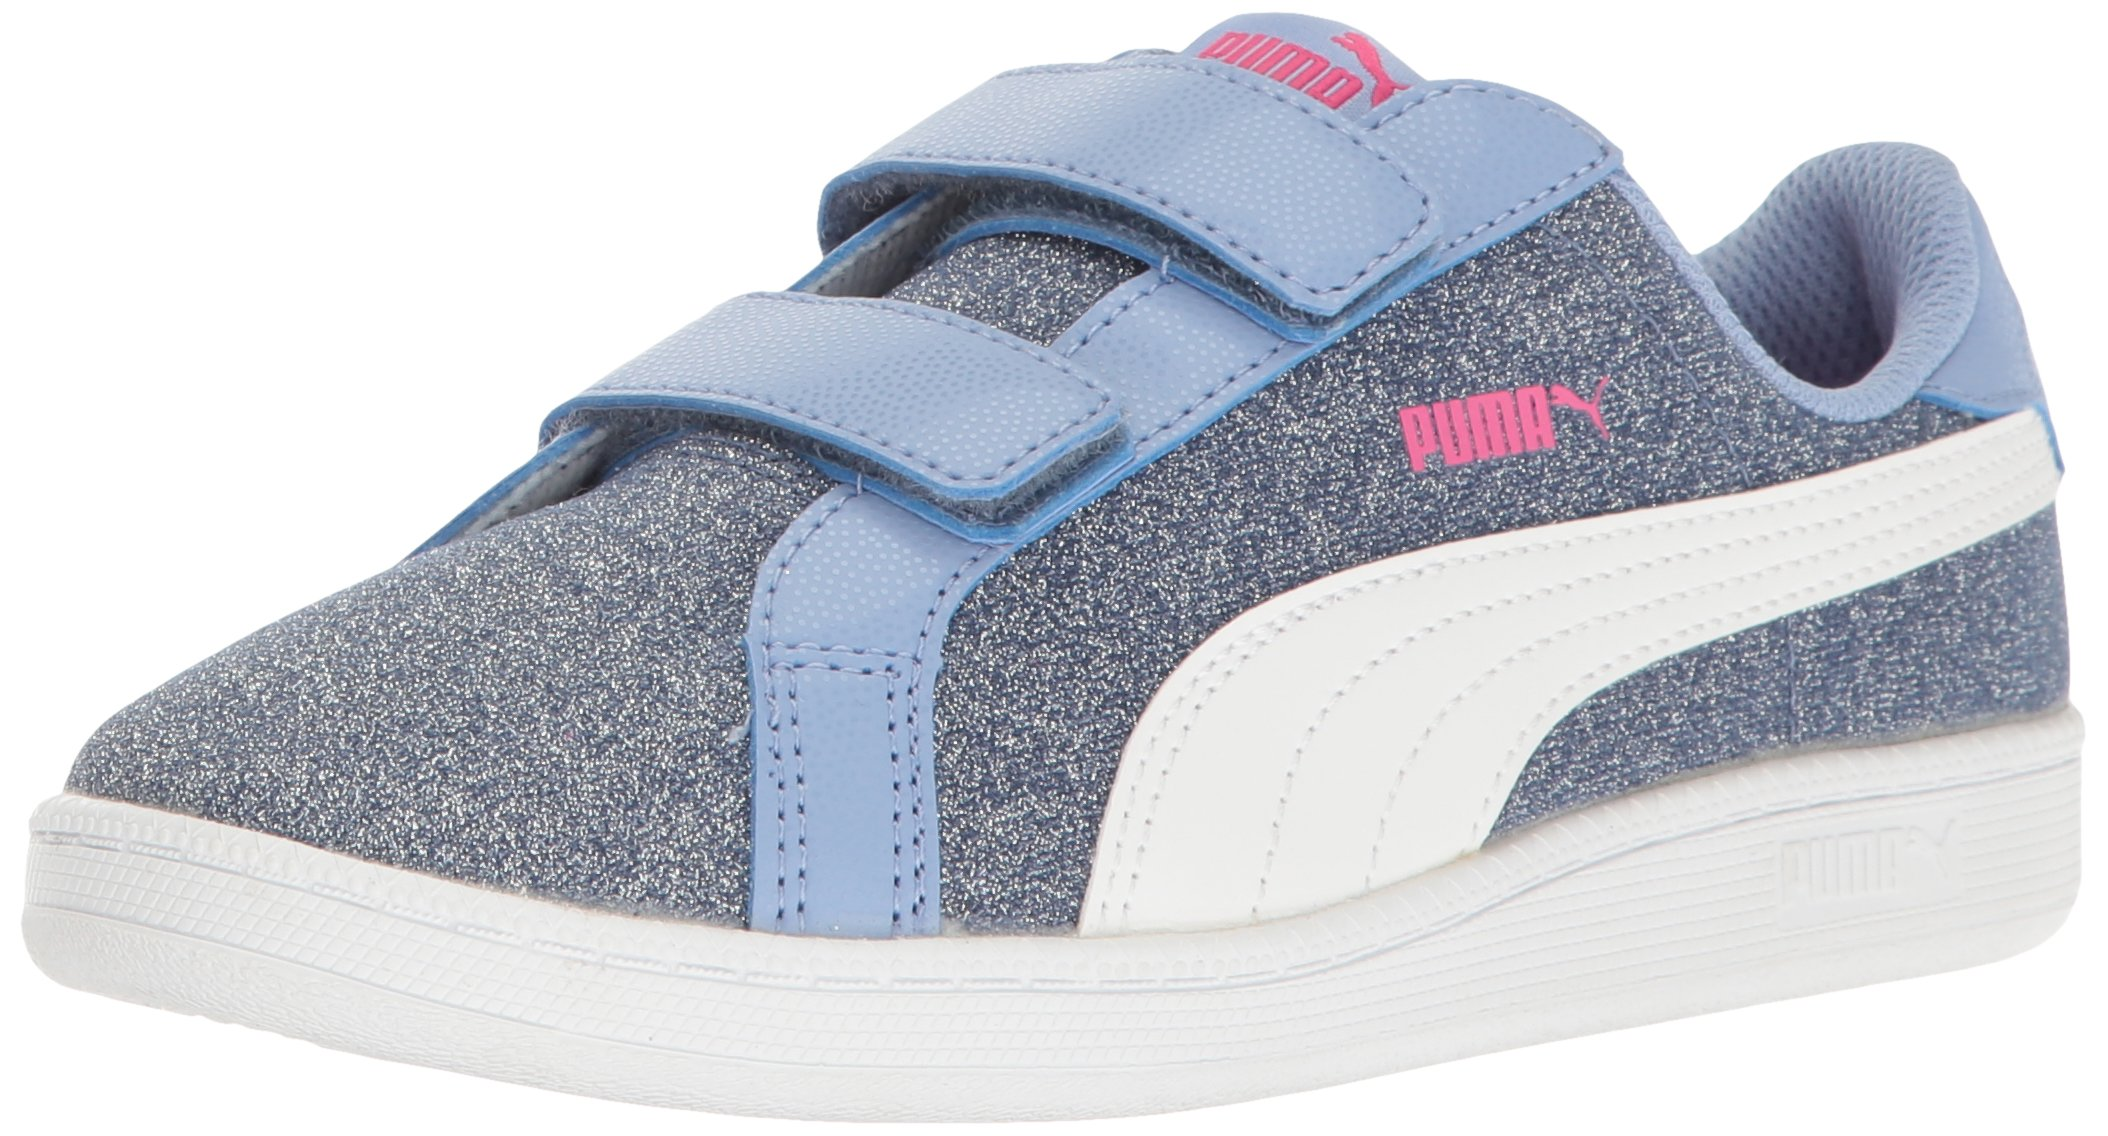 Buy Puma Tallula Glamm V Kids Low Top Girls in Cheap Price on ... 21fc7e674